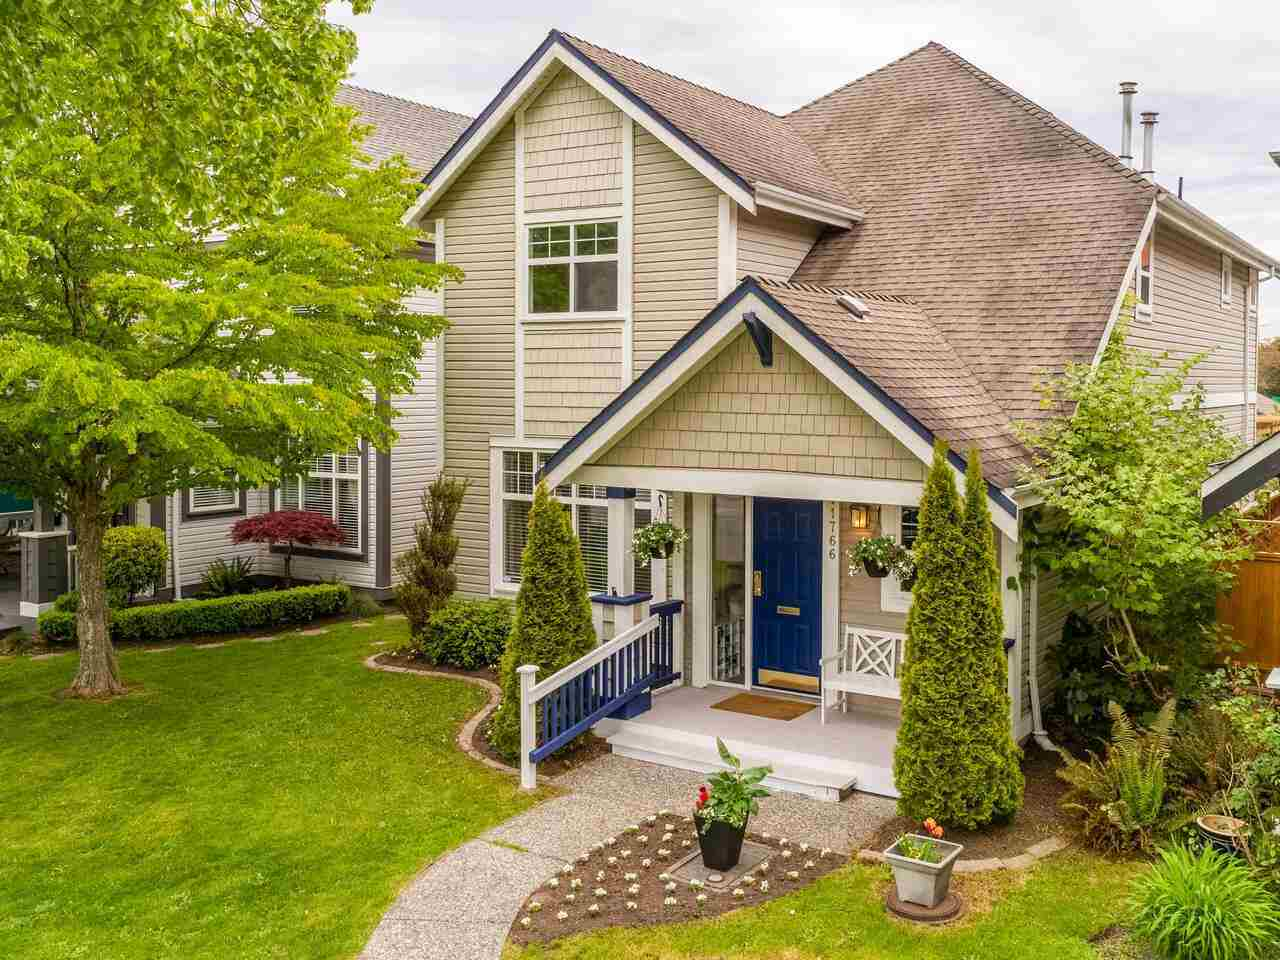 11766 FENTIMAN PLACE - Steveston South House/Single Family for sale, 3 Bedrooms (R2577458)